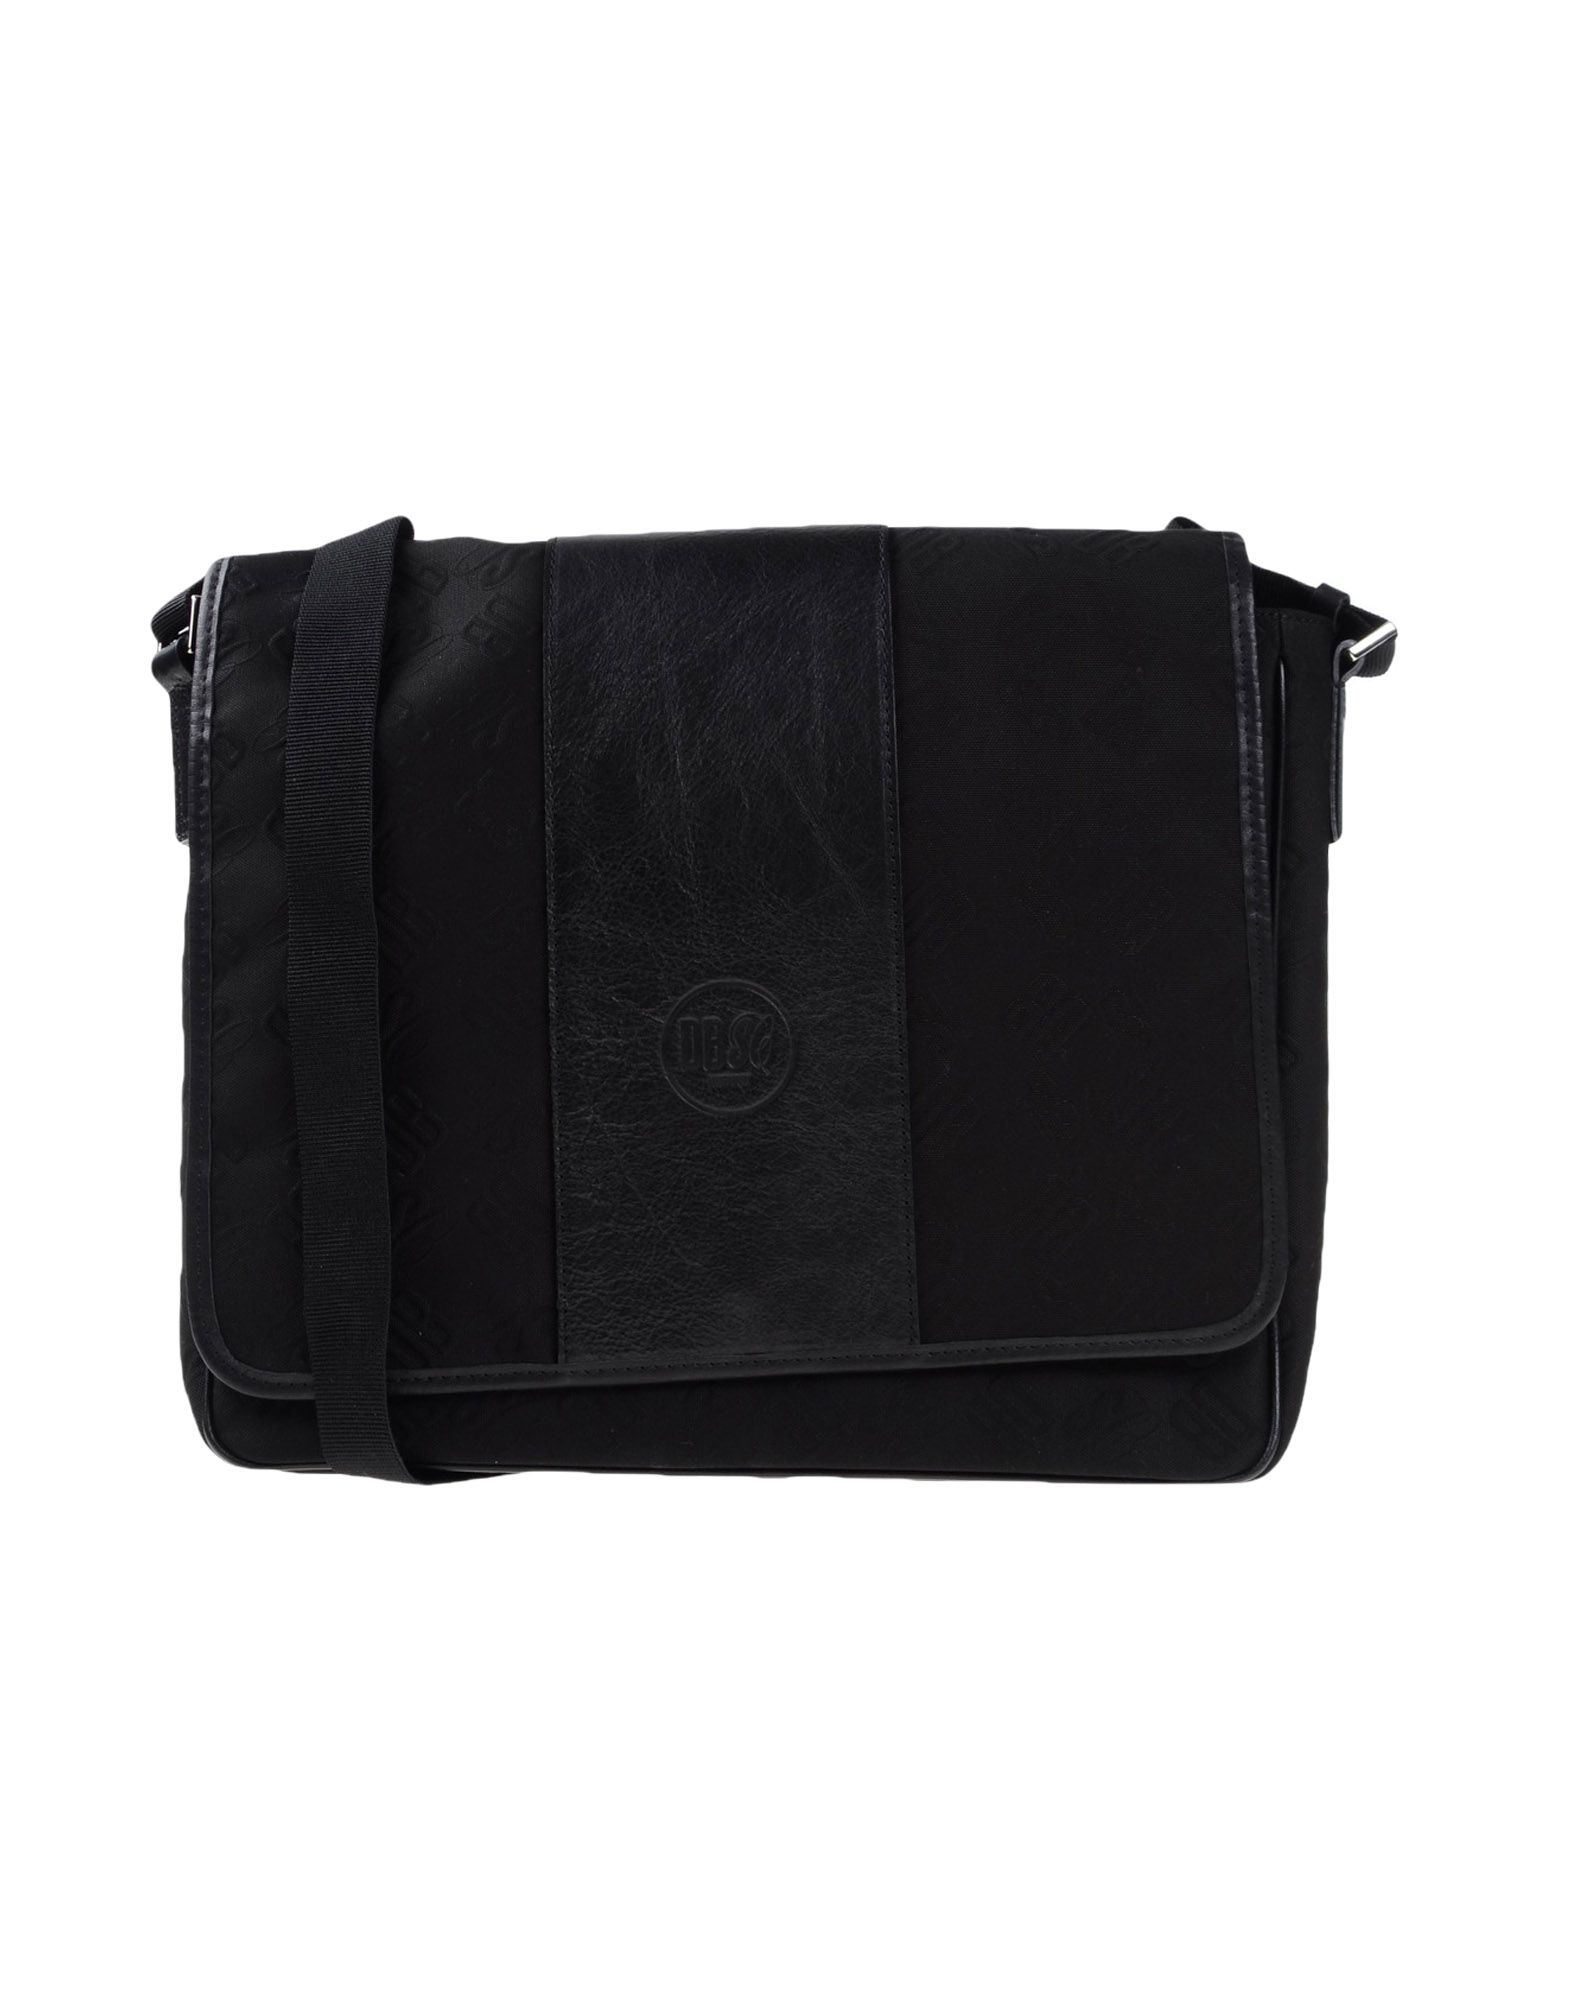 HANDBAGS - Cross-body bags Dirk Bikkembergs Affordable Online Shop Top Quality Cheap Price Twj9QRYMac